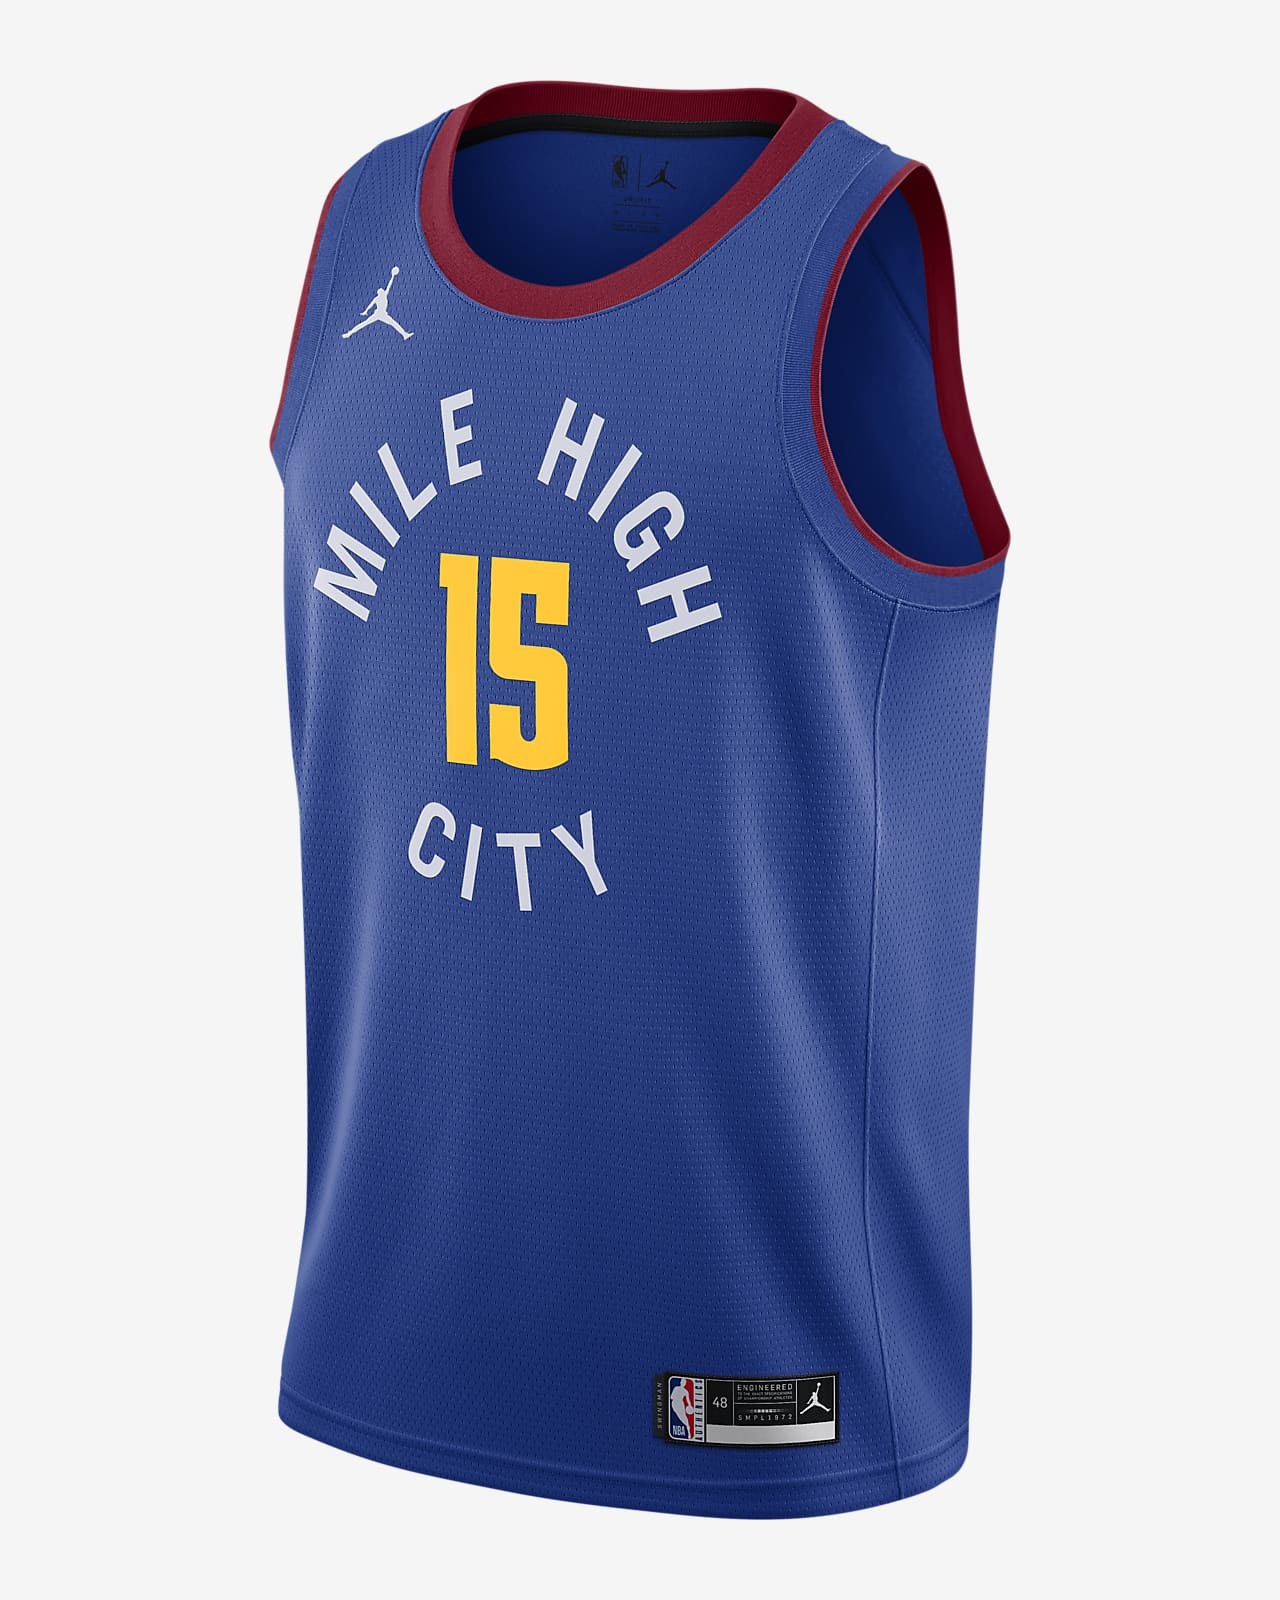 Denver Nuggets Nuggets Statement Edition 2020 Jordan NBA Swingman Jersey